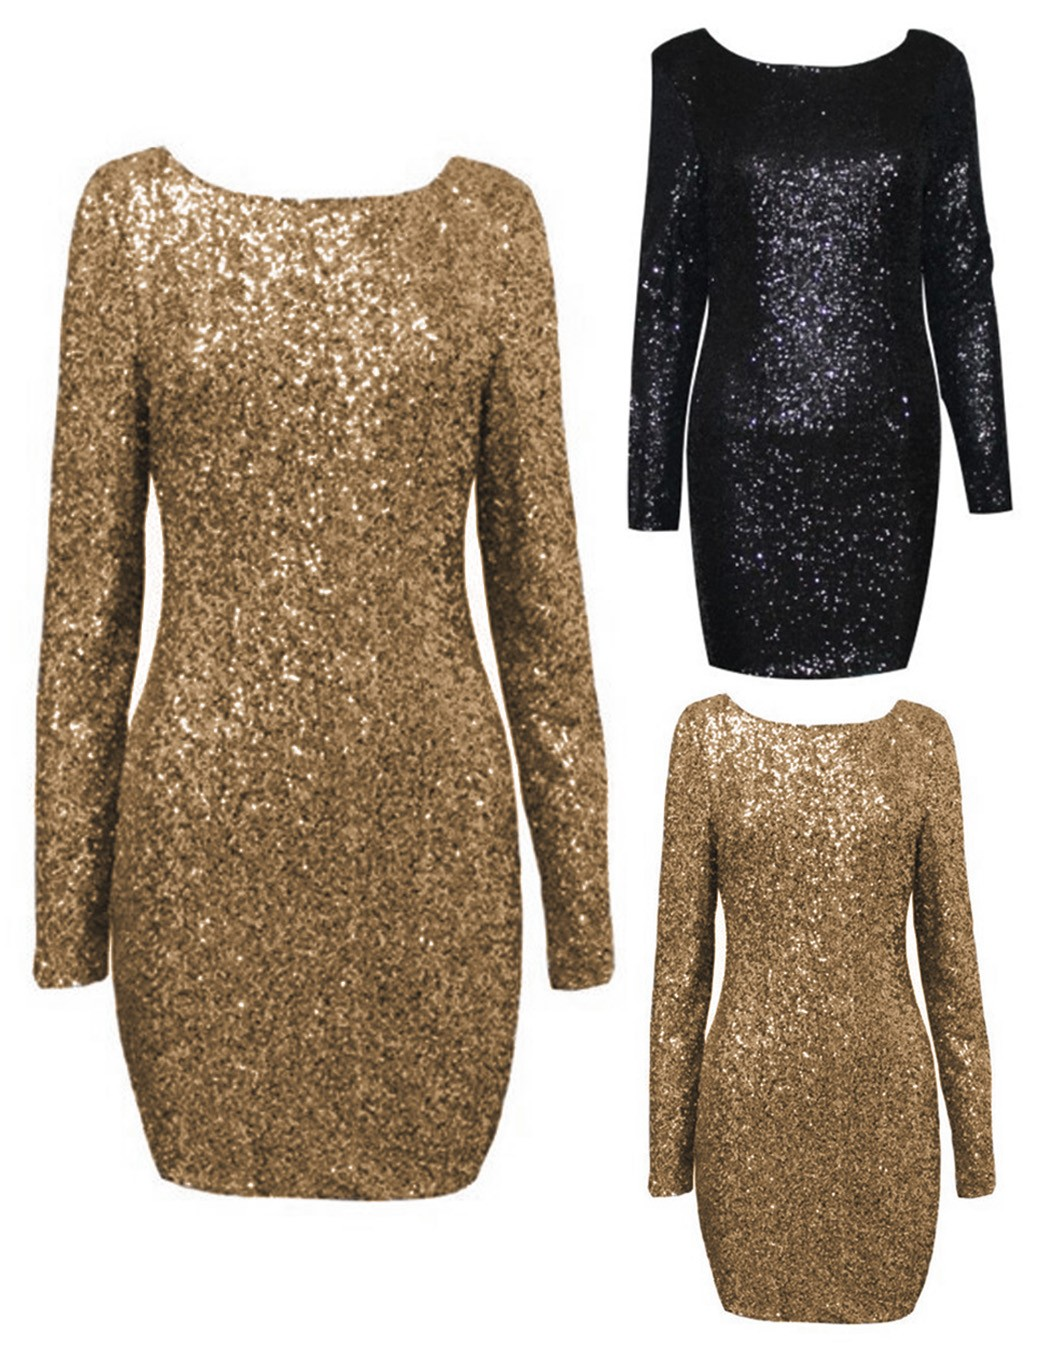 Drop shipping .Fashion major Halter back sequin dress open back long sleeve  backless bodycon party dress 2 colors 10-in Dresses from Women s Clothing  on ... e399f5b634d5